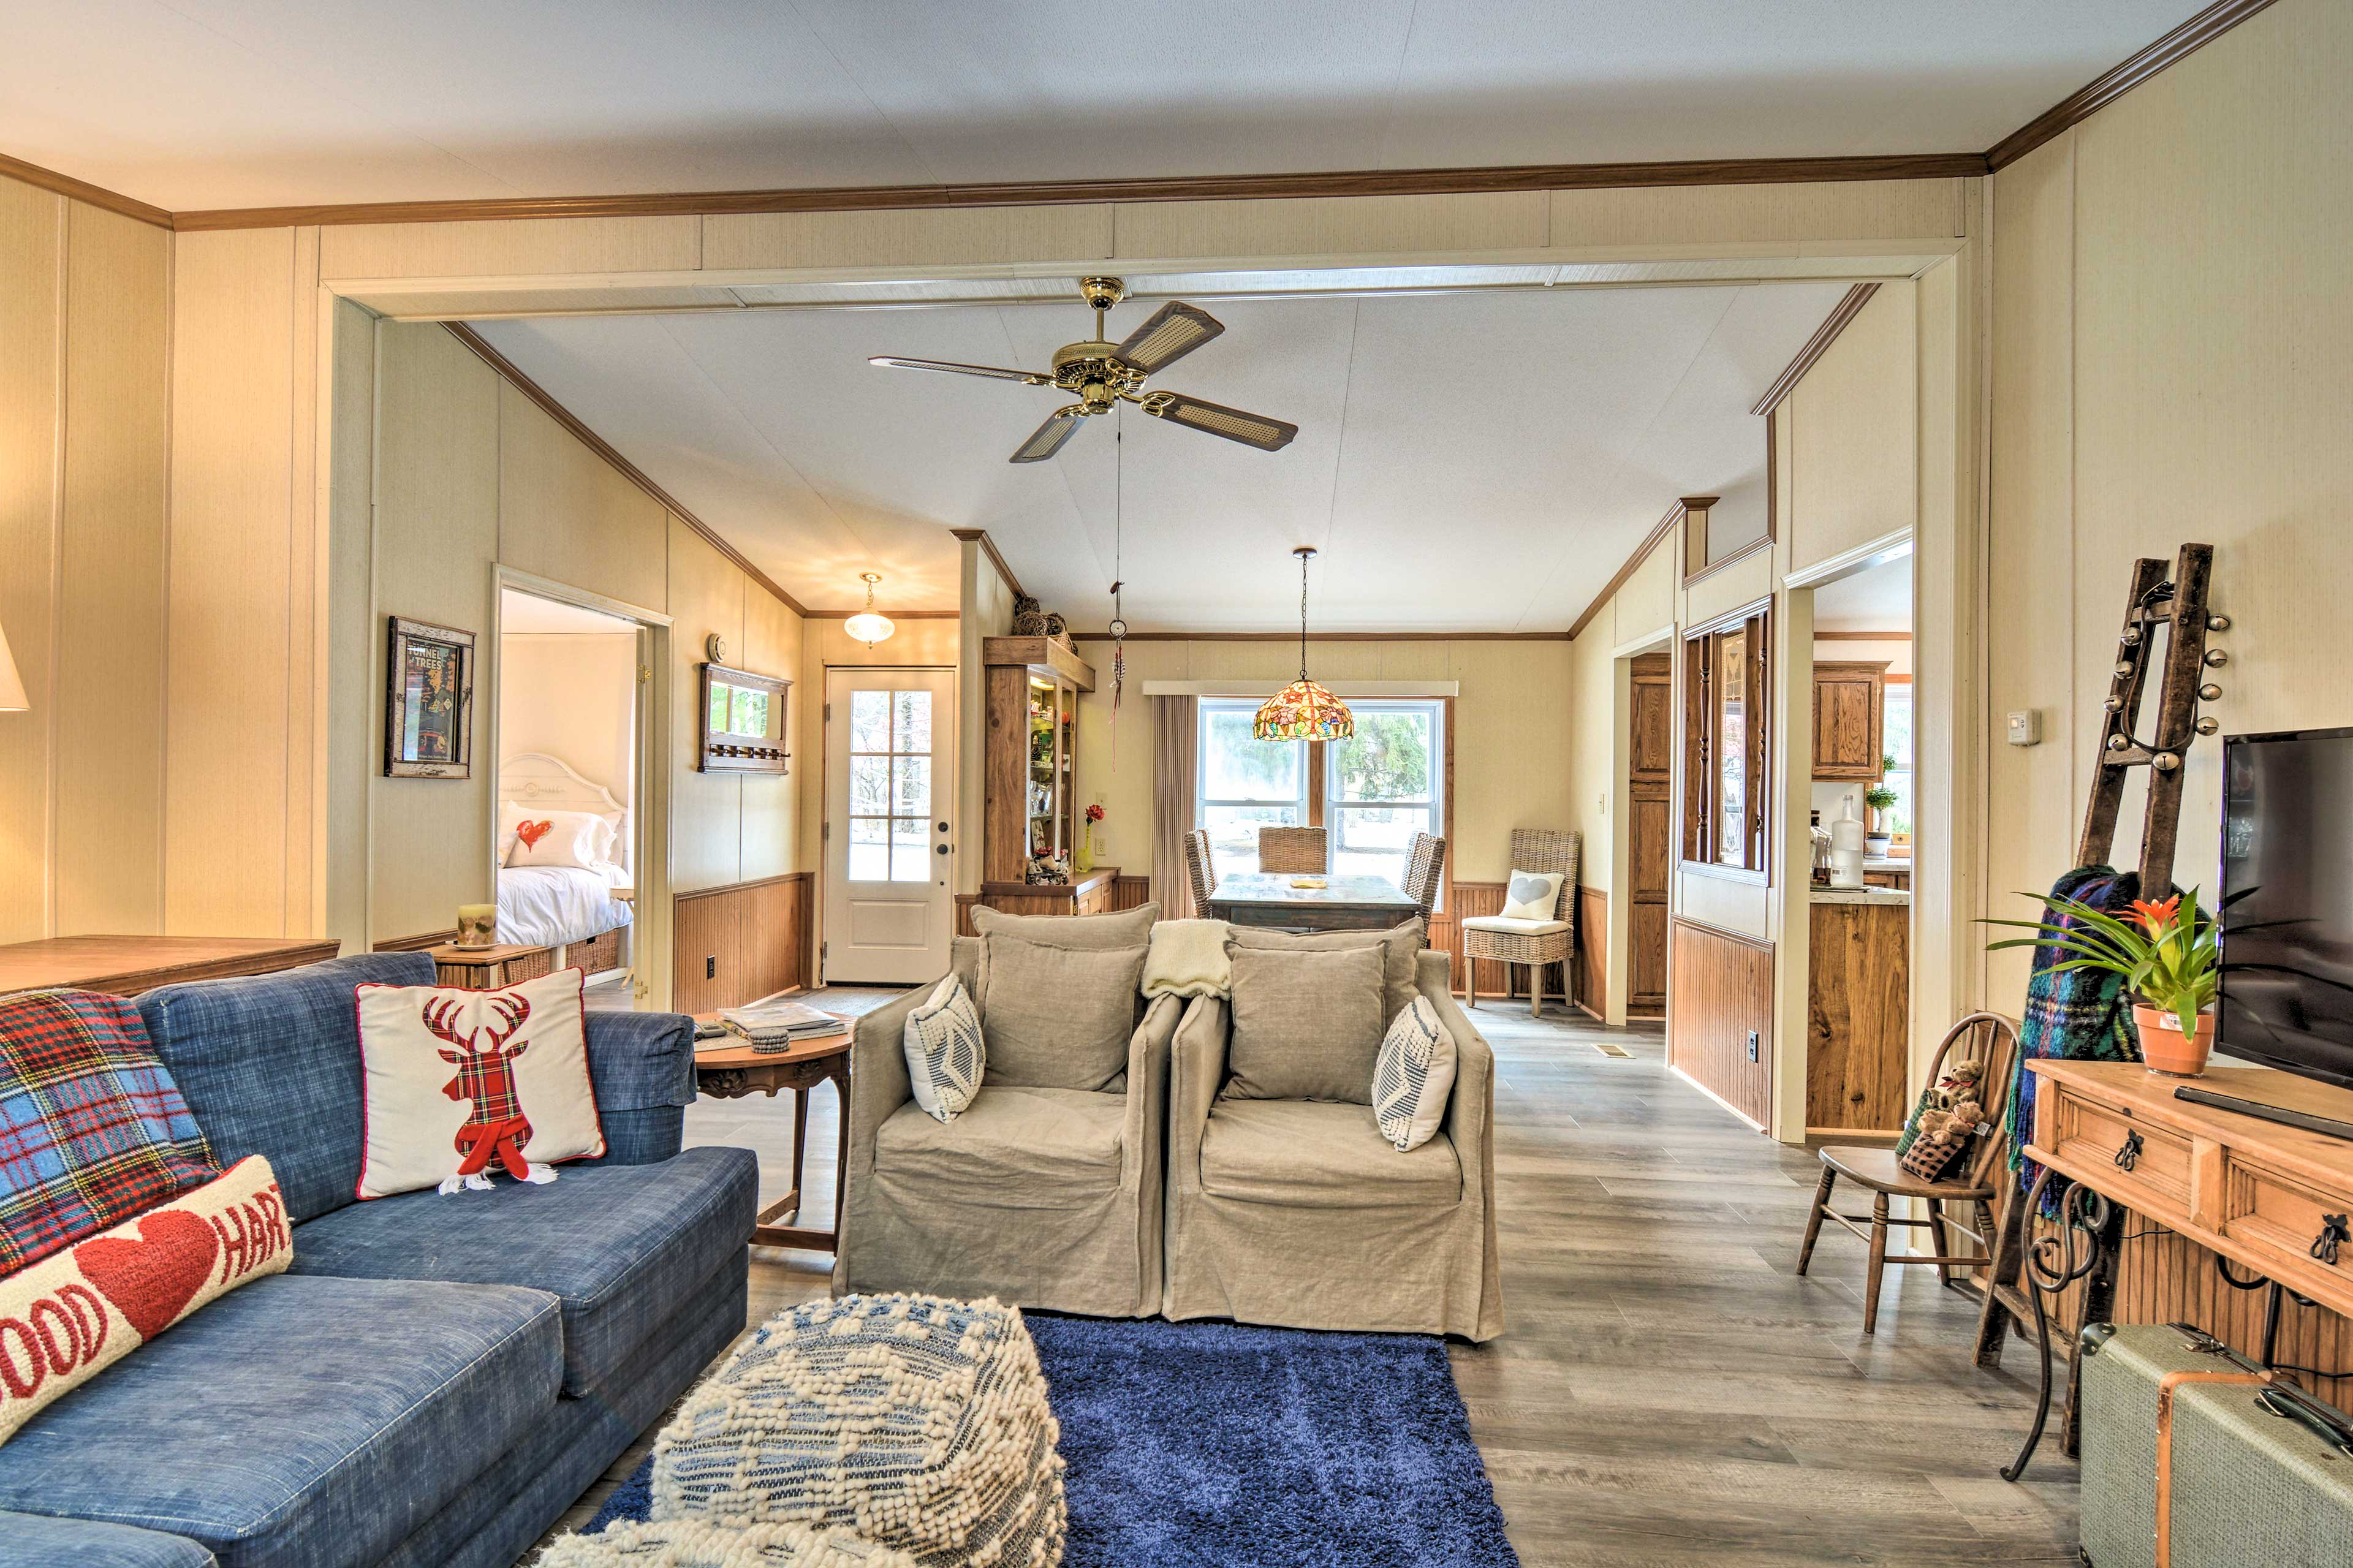 The open layout of the vacation rental makes it easy to socialize.